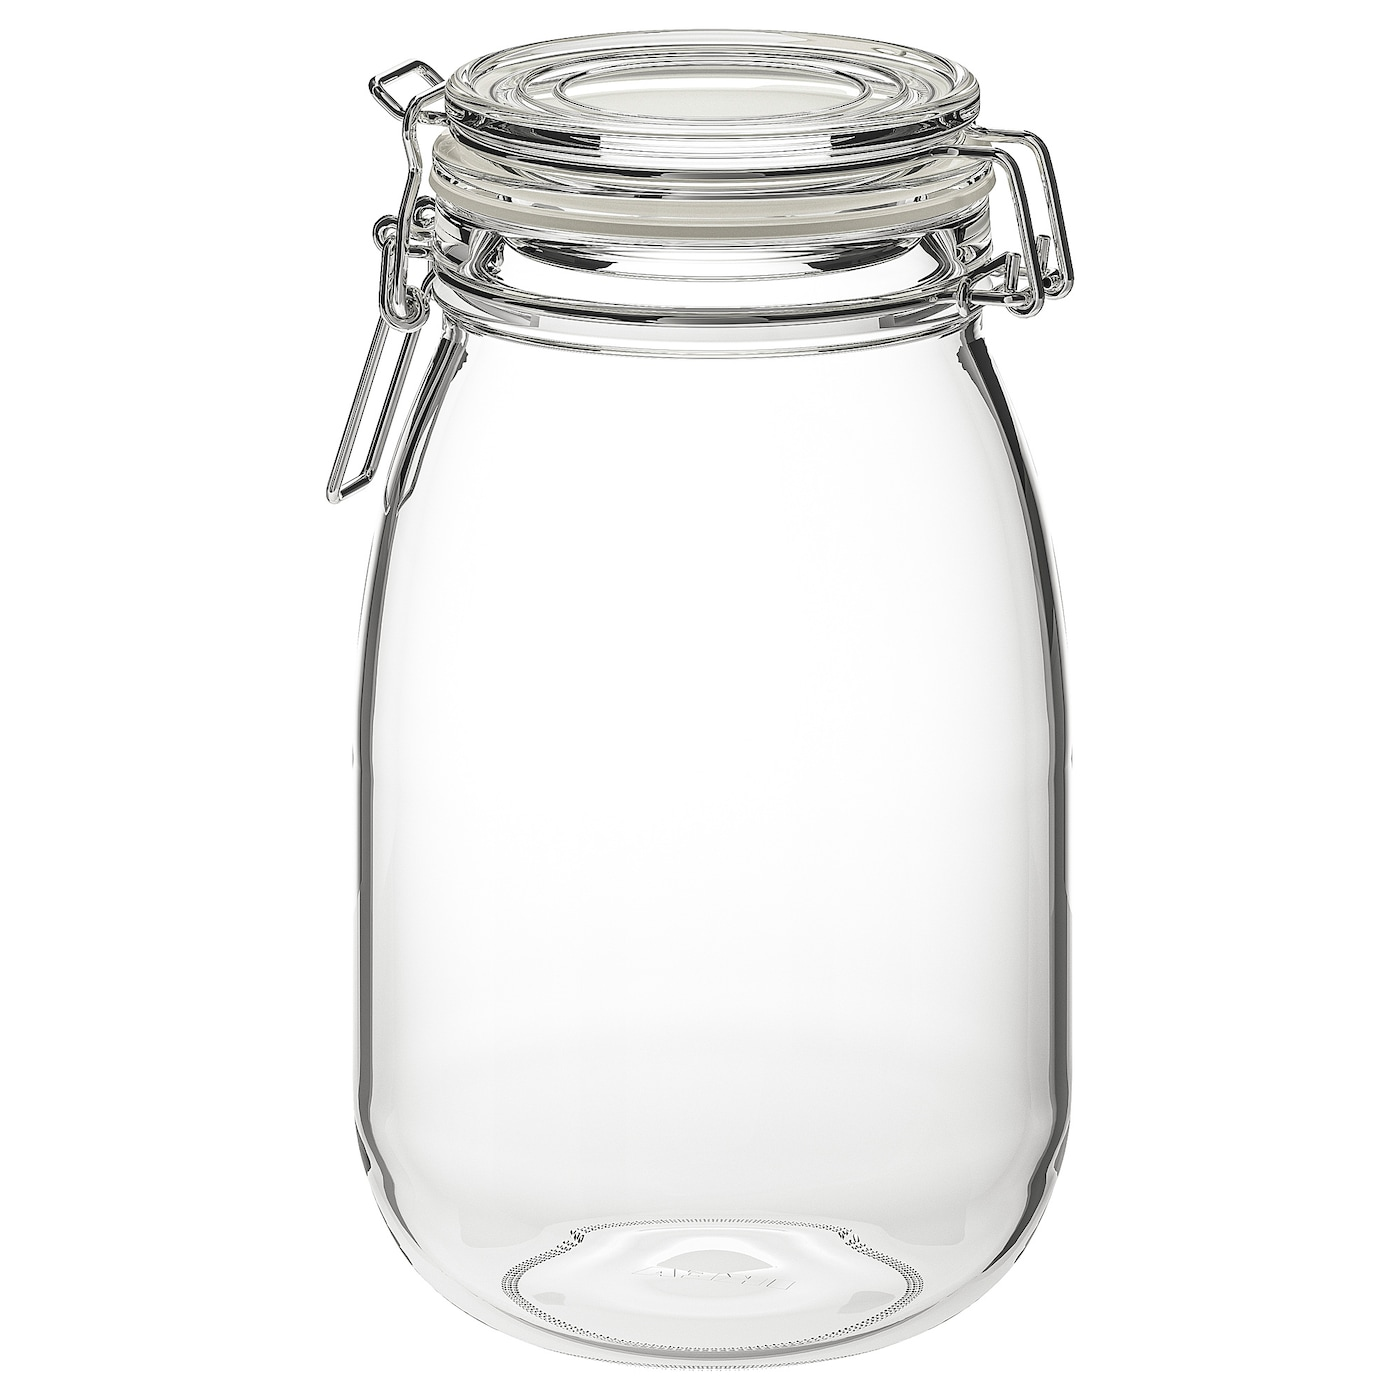 IKEA KORKEN jar with lid The aroma-tight seal helps food retain its flavour and aroma longer.